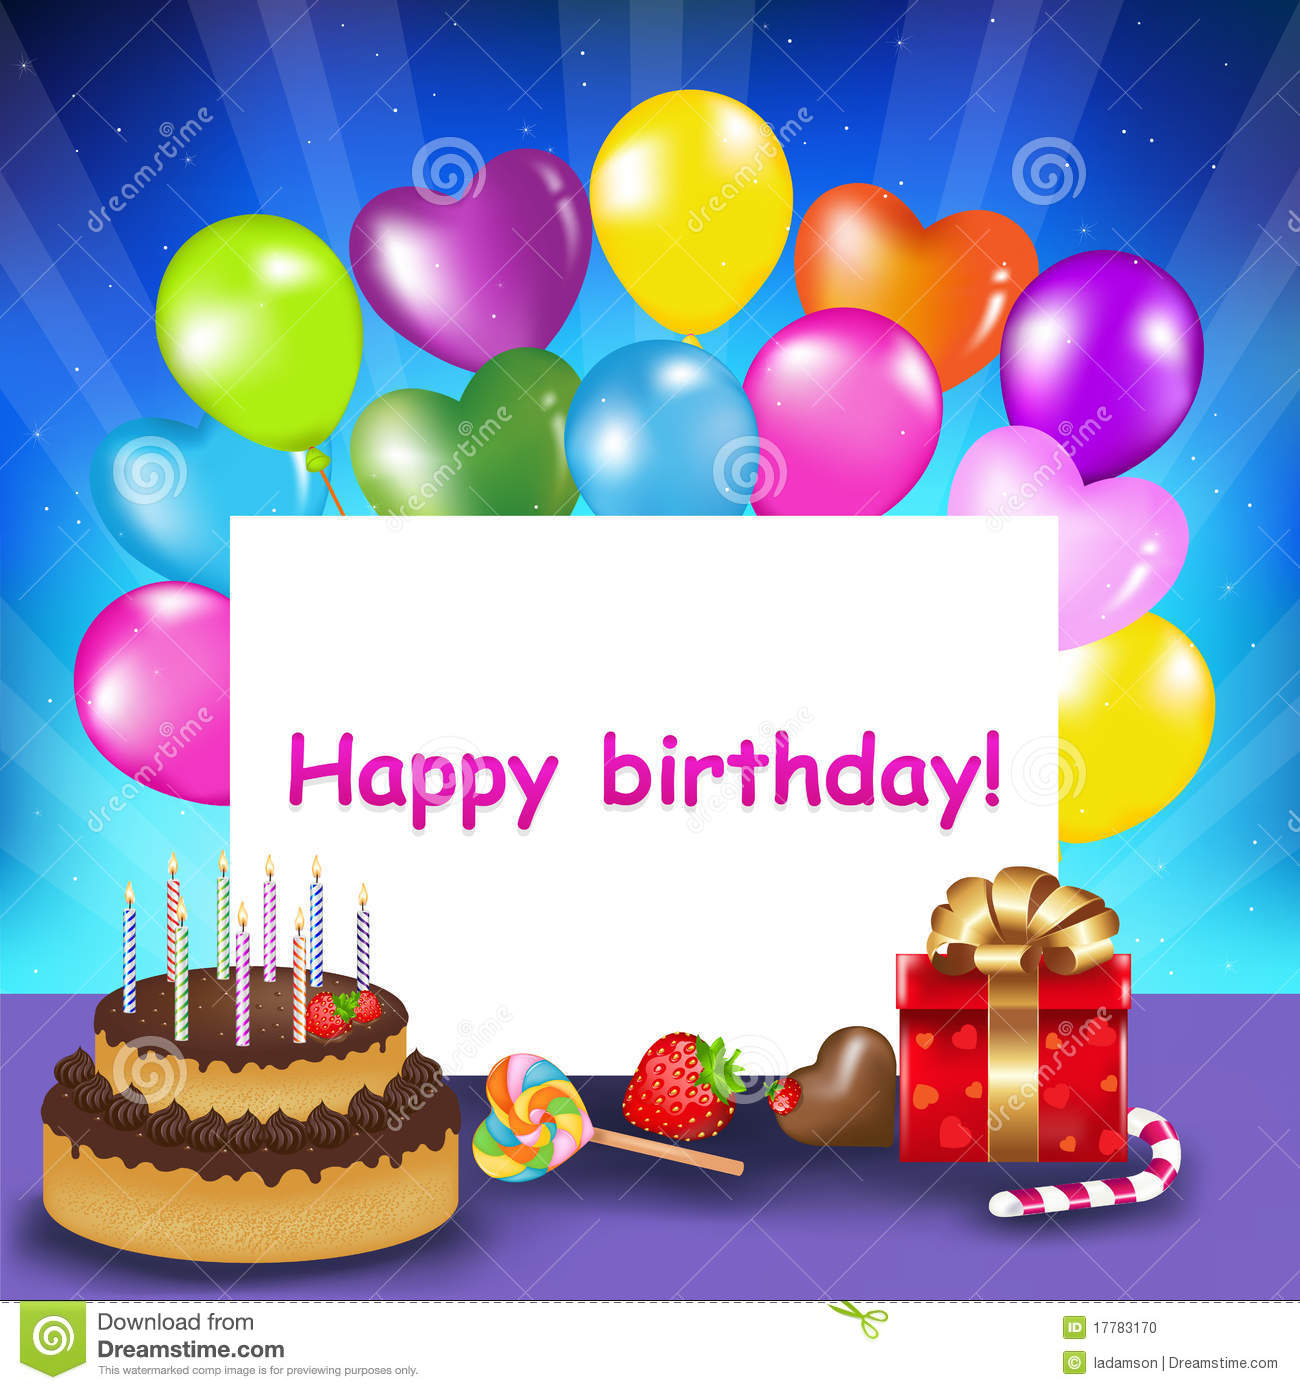 happy birthday cards pictures ; birthday-card-top-happy-birthday-cards-for-facebook-friends-123-petite-happy-birthday-cards-facebook-friends